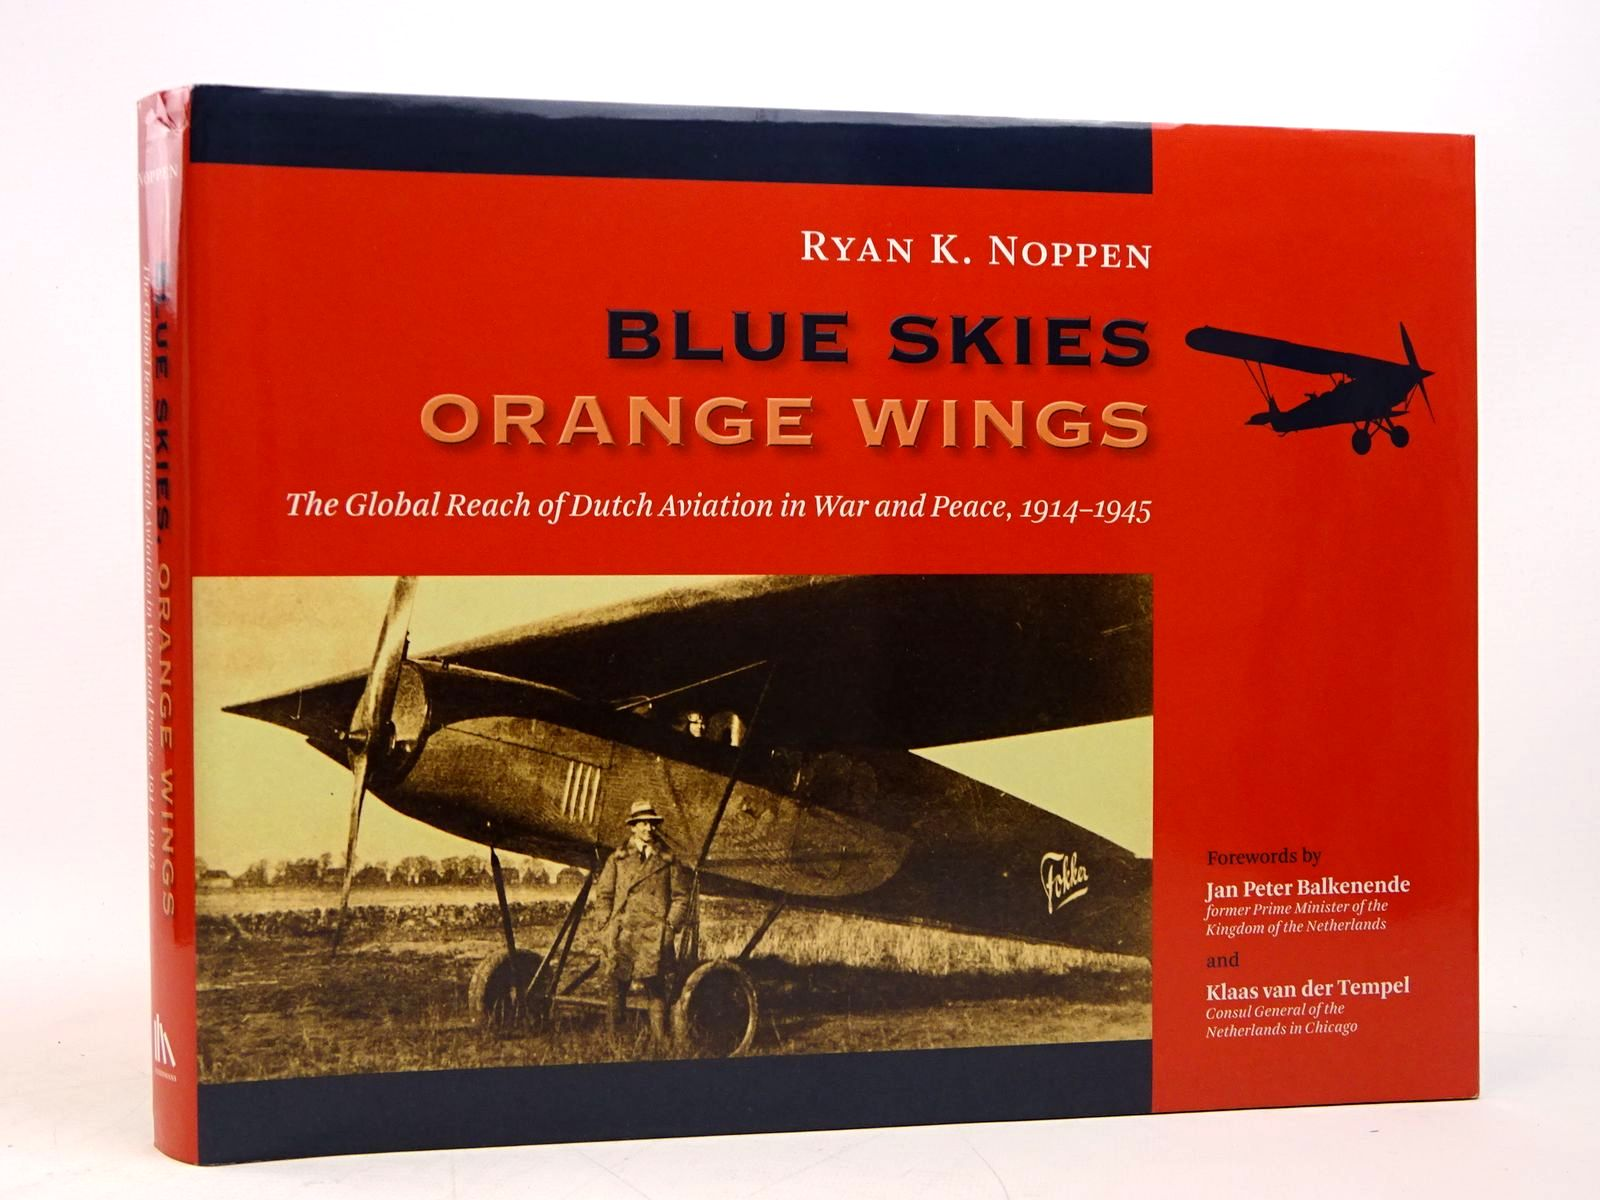 Photo of BLUE SKIES, ORANGE WINGS: THE GLOBAL REACH OF DUTCH AVIATION IN WAR AND PEACE 1914-1945 written by Noppen, Ryan K. published by Wm. B. Eerdmans (STOCK CODE: 1817903)  for sale by Stella & Rose's Books